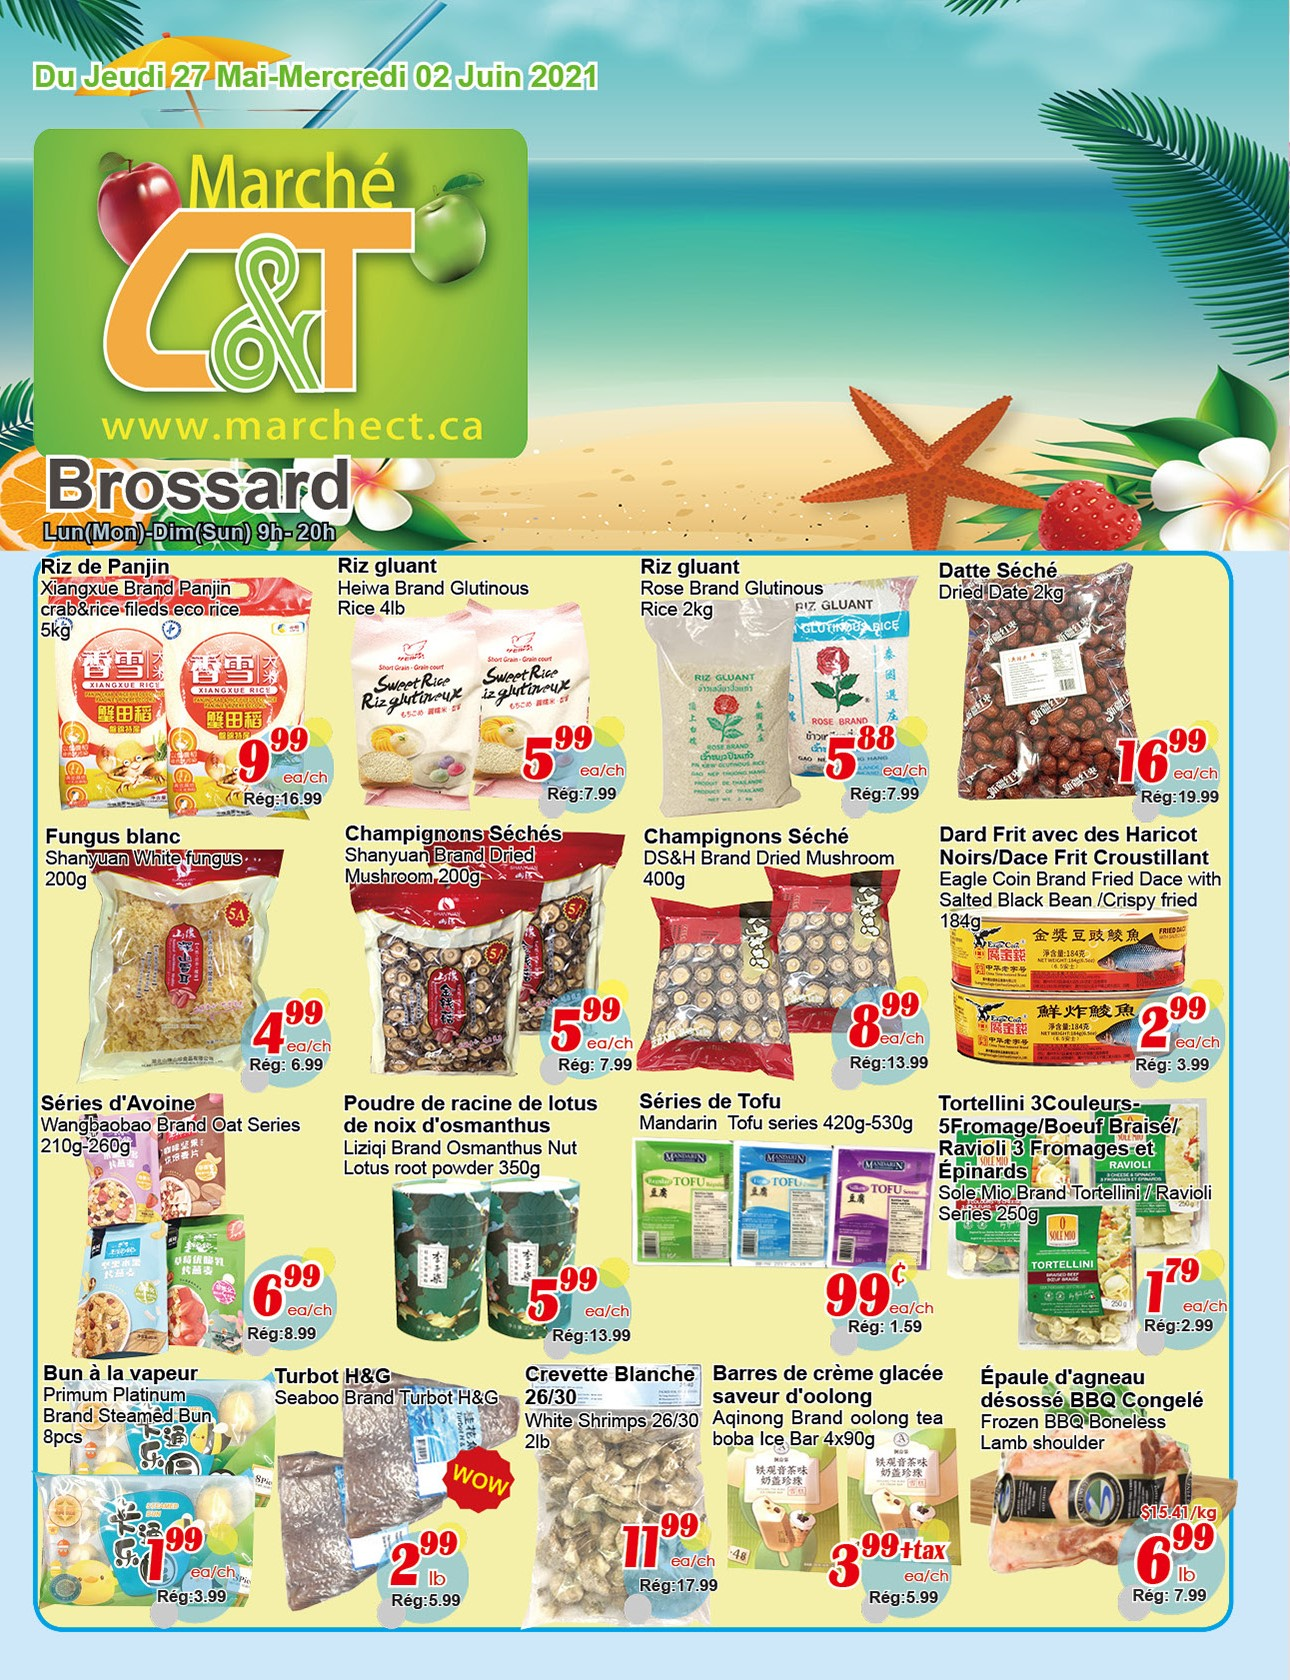 Marché C&T Brossard Flyer May 27